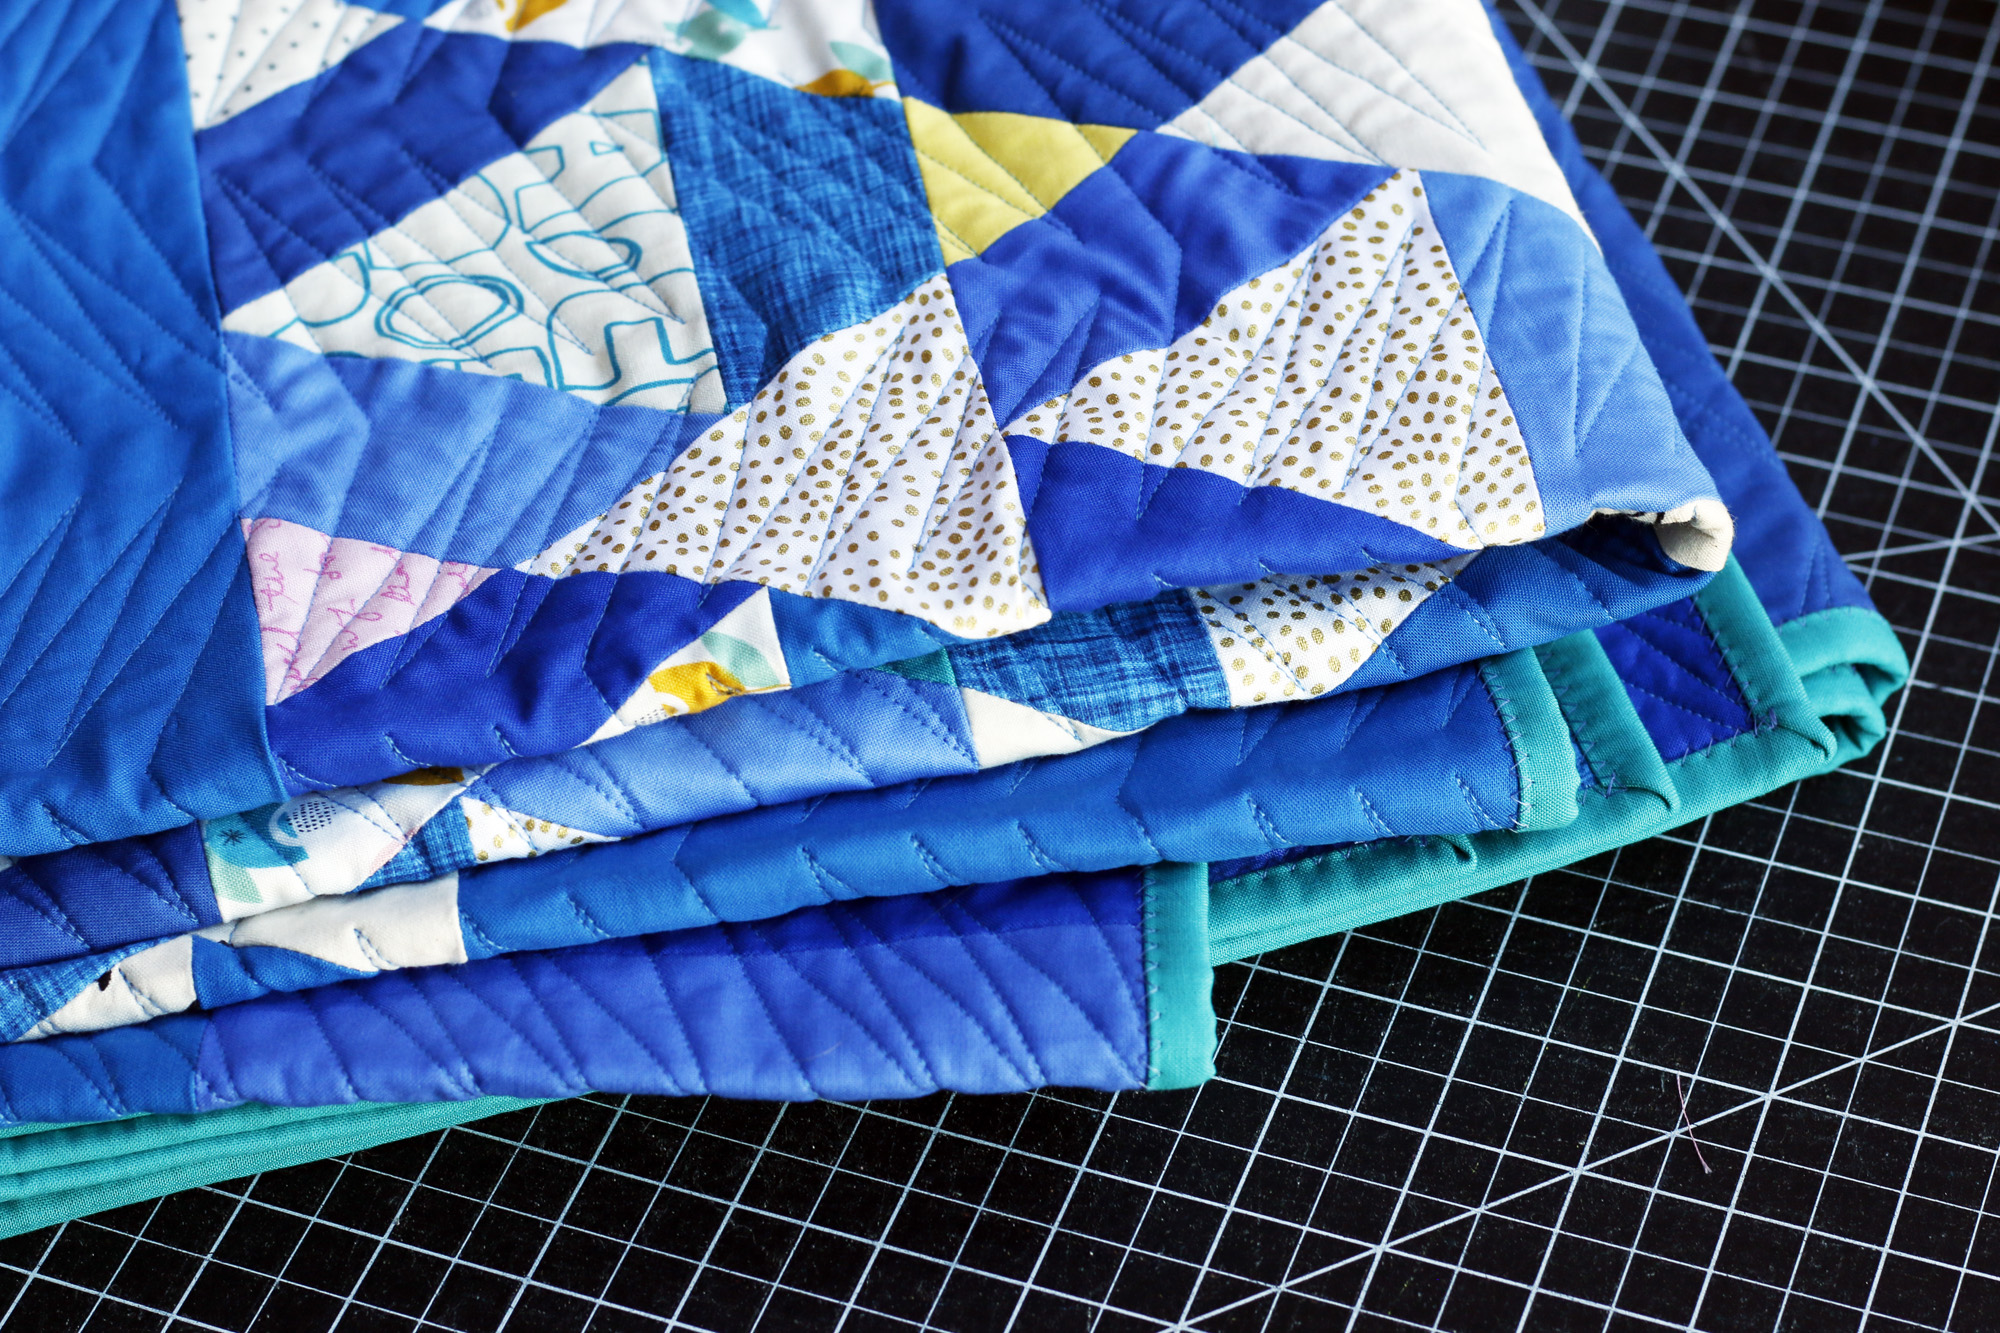 Lavender Blue solid binding. Stitched in Color.jpg